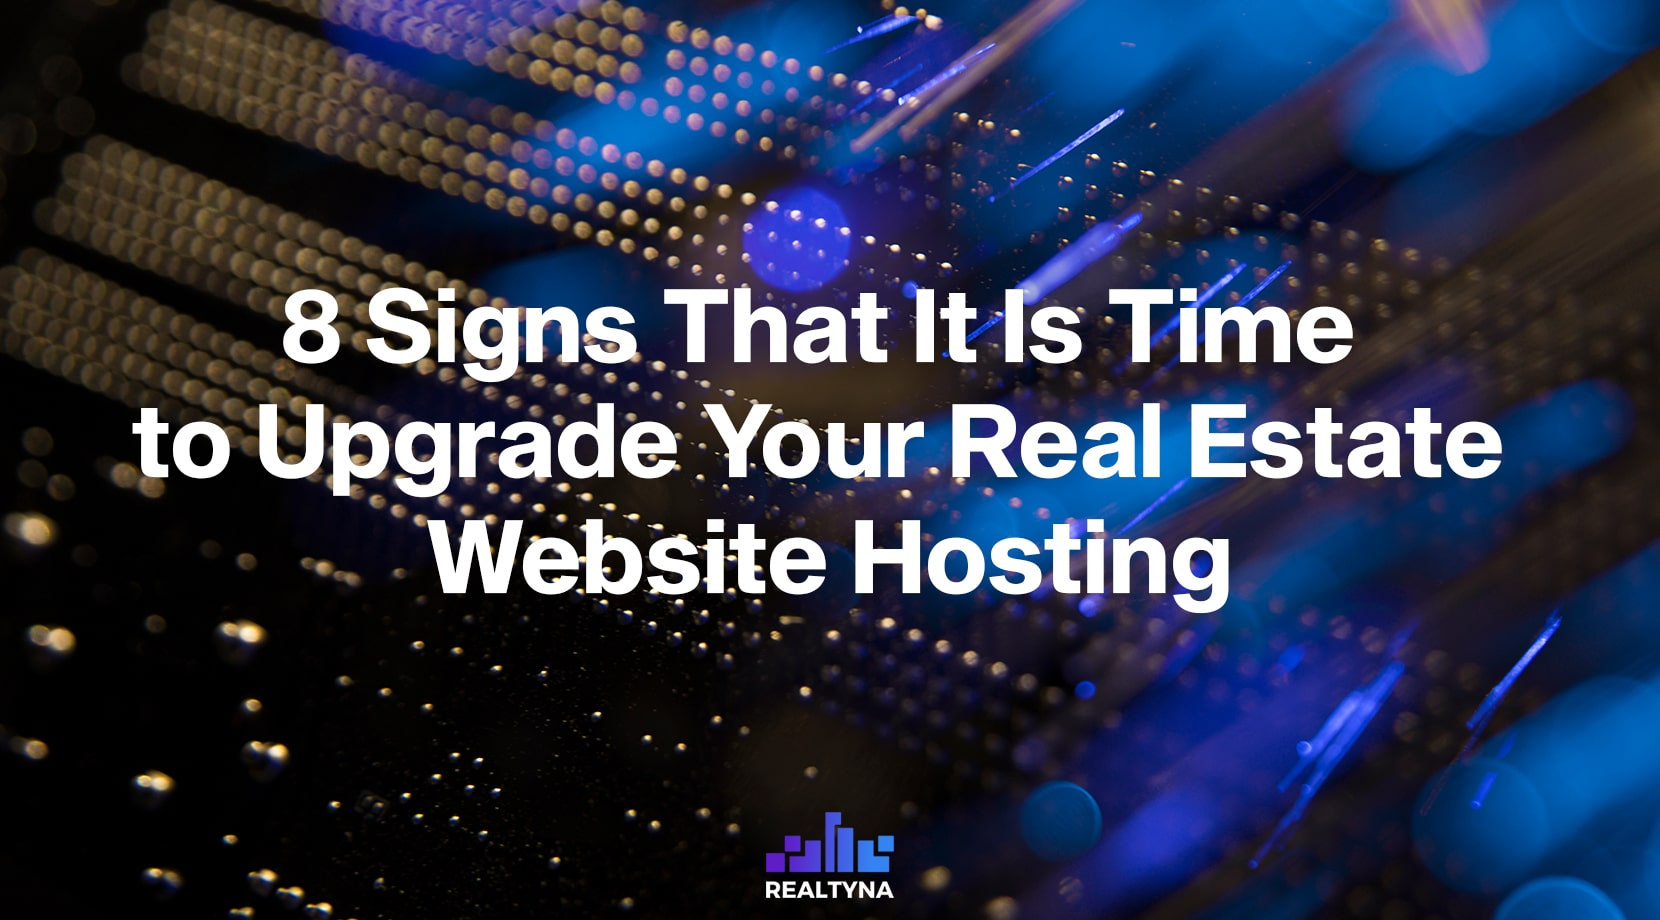 8 Signs That It Is Time to Upgrade Your Real Estate Website Hosting